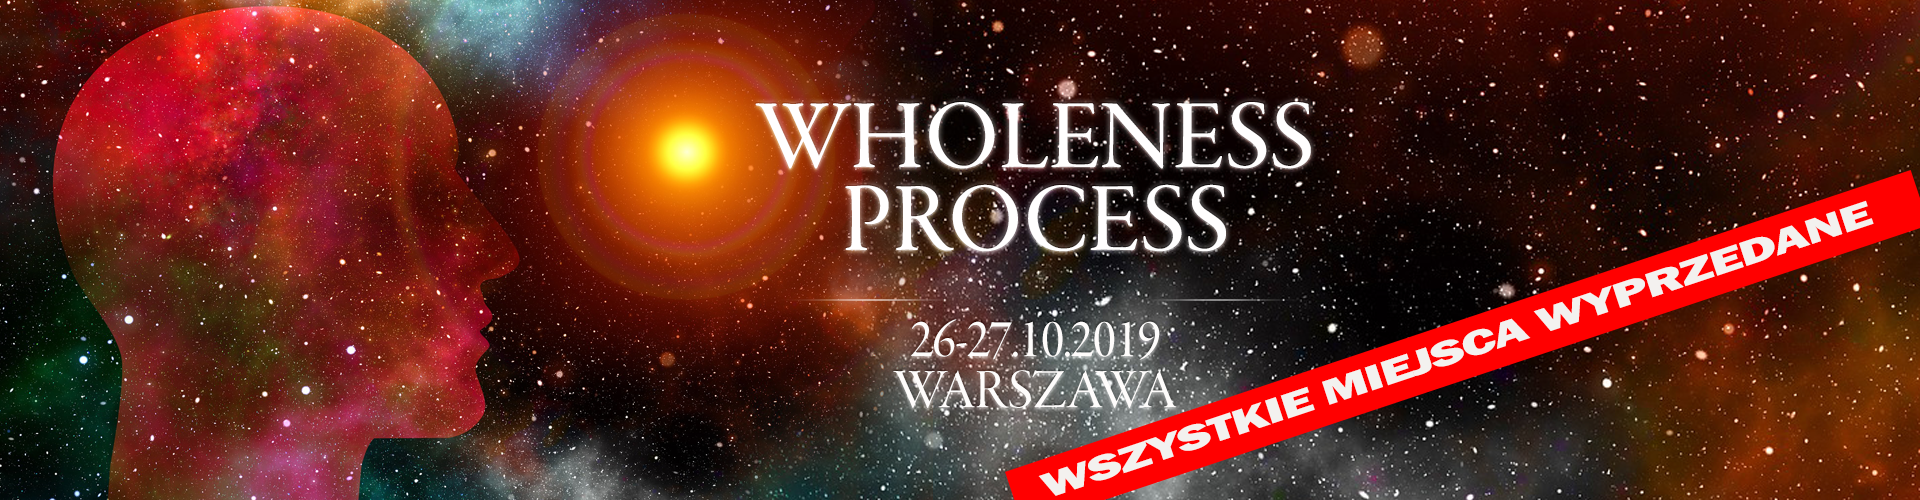 WHOLENESS-PROCESS-DUZY-wyp